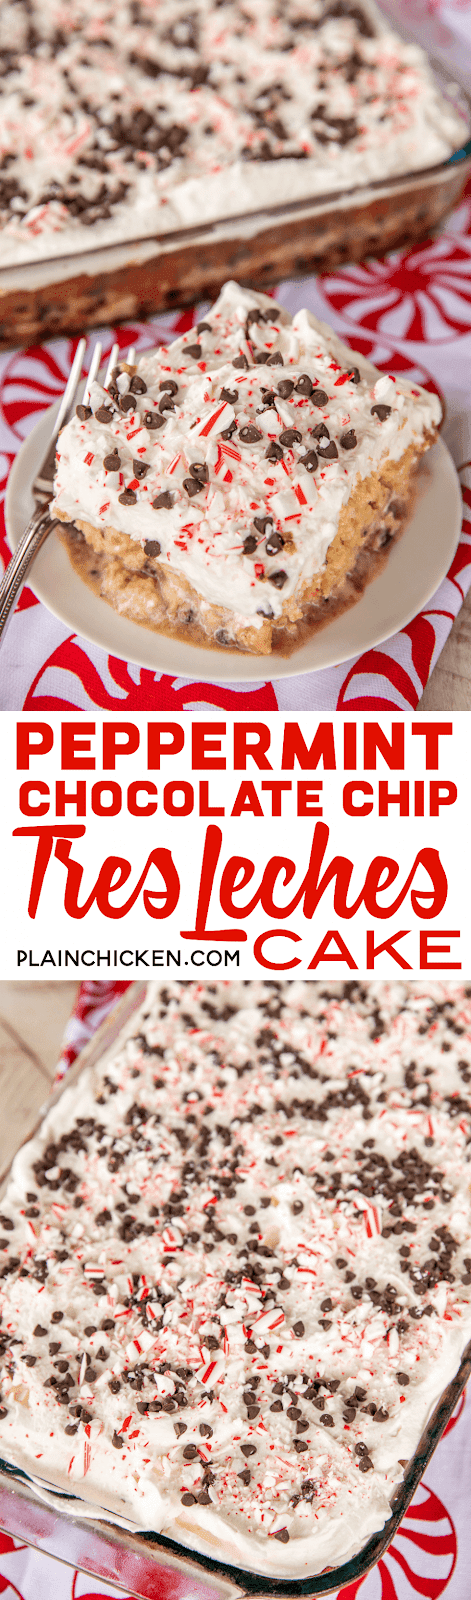 Peppermint Chocolate Chip Tres Leches Cake - dangerously delicious! Great for all your upcoming holiday parties!! Yellow cake mixed baked with candy canes and chocolate chips then soaked in three milks - sweetened condensed milk, half-and-half and evaporated milk. Top cake with whipped cream and more candy canes and chocolate chips. We could not stop eating this delicious cake! #dessert #peppermint #chocolatechips #candycakes #cake